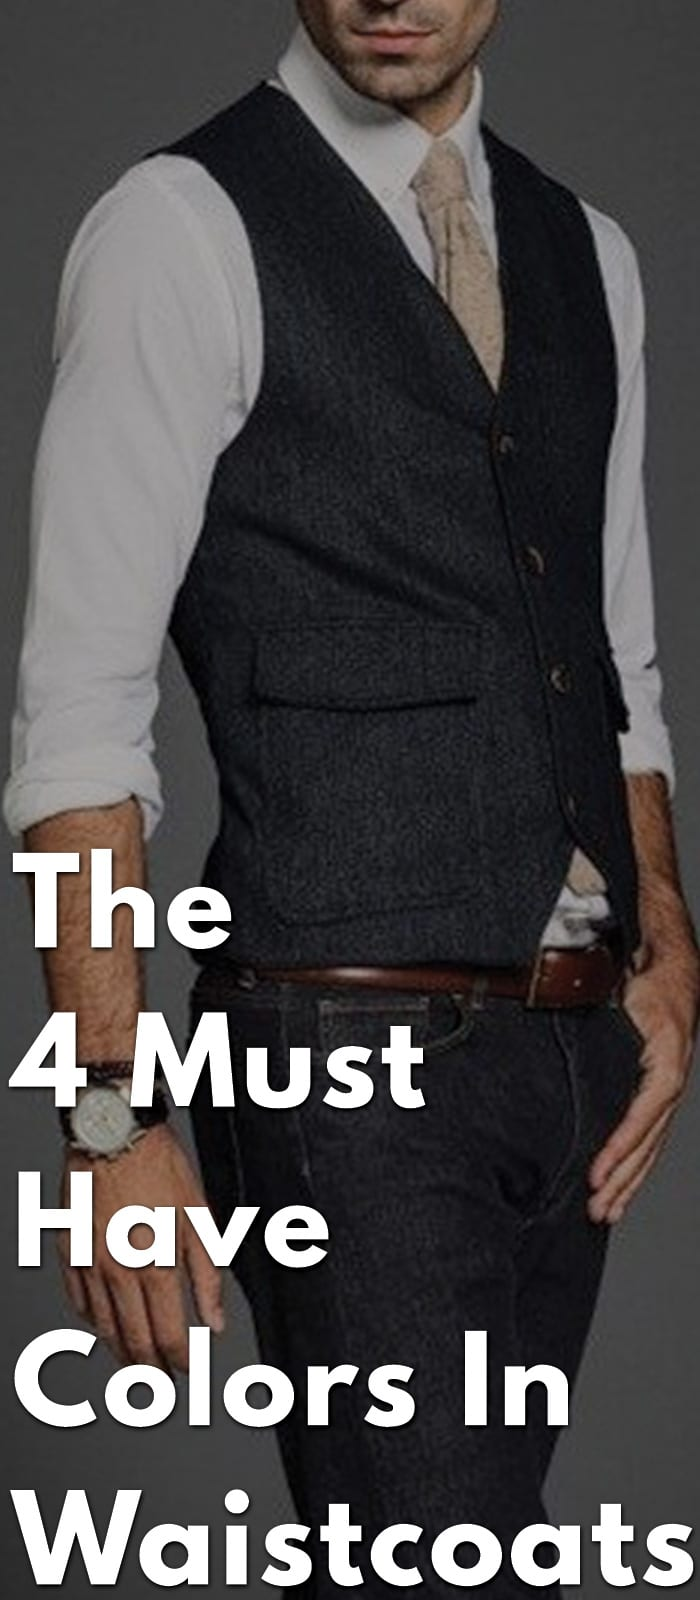 The-4-Must-Have-Colors-In-Waistcoats